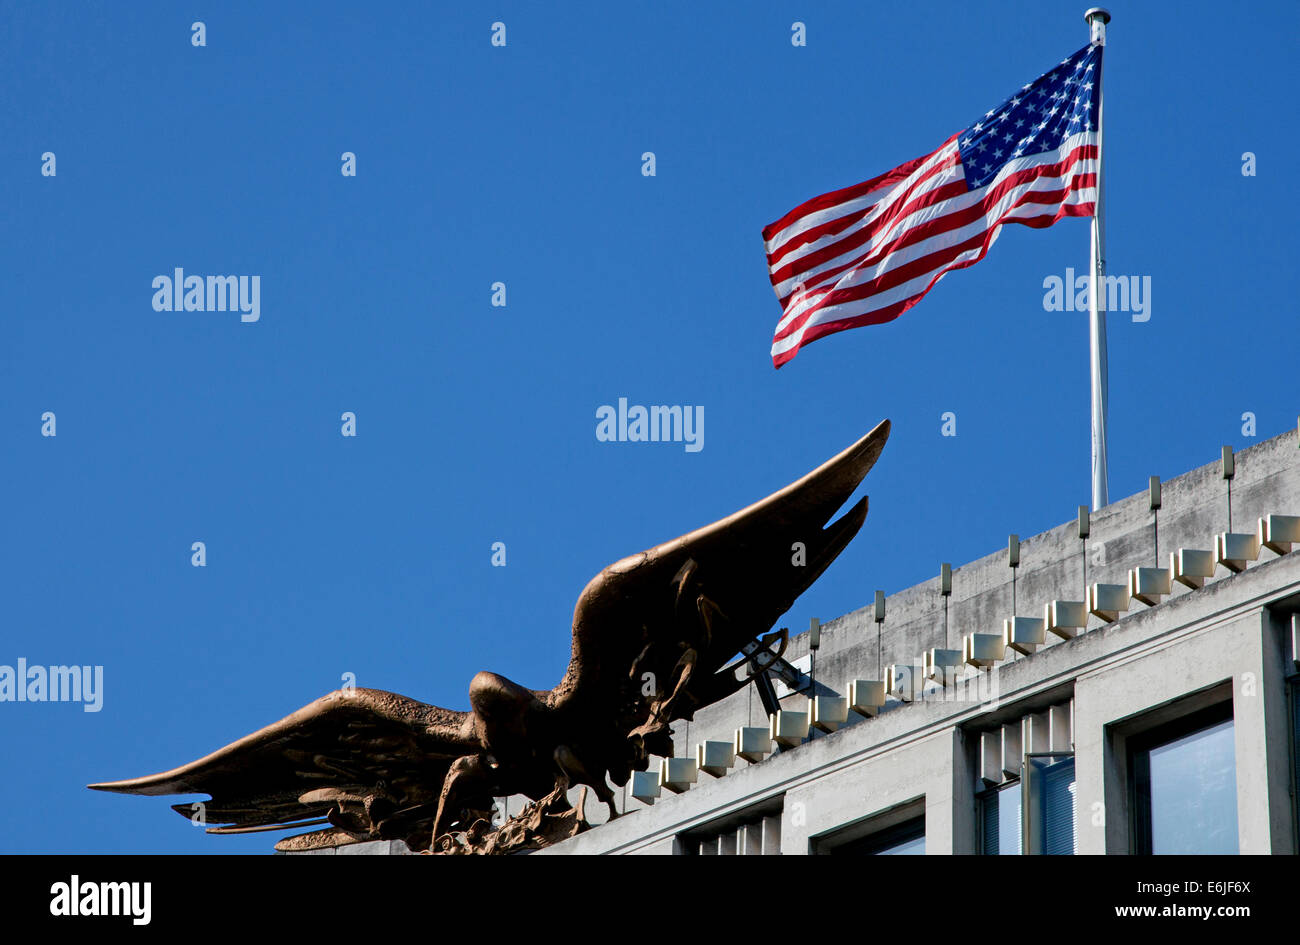 U.S. eagle and flag above American Embassy in Grosvenor Square, Mayfair, London - Stock Image